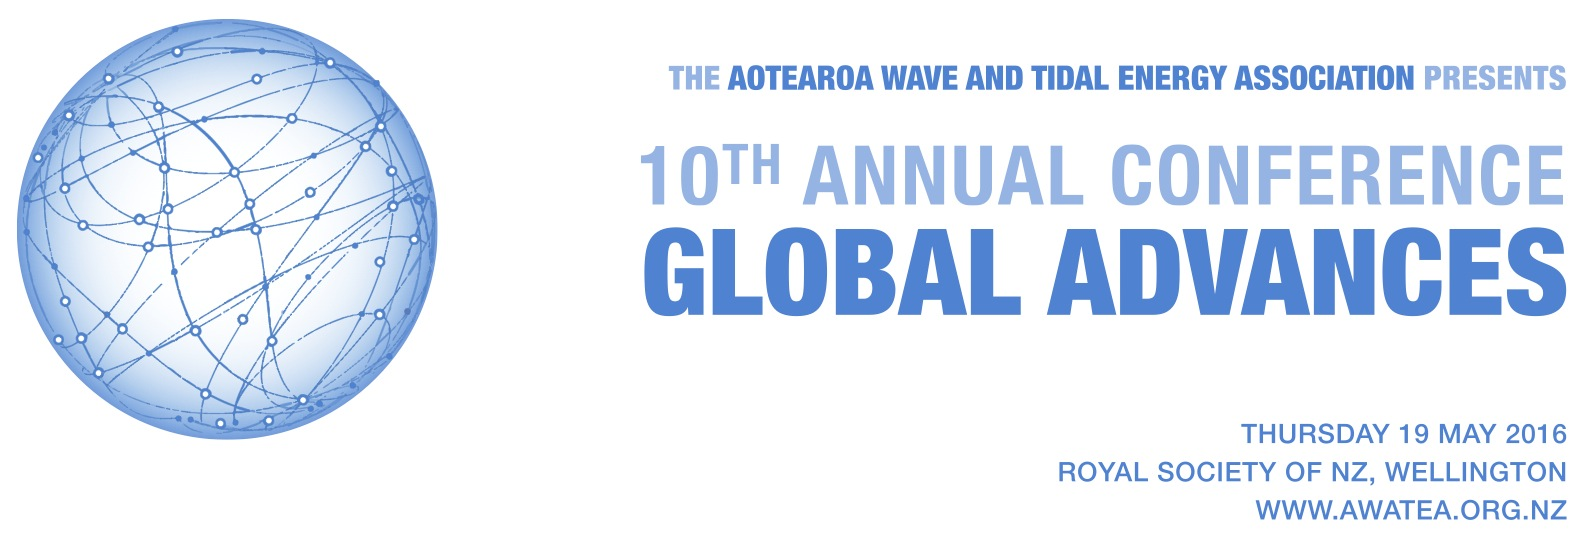 Wave and Tidal Energy Conference 2016: Global Advances logo